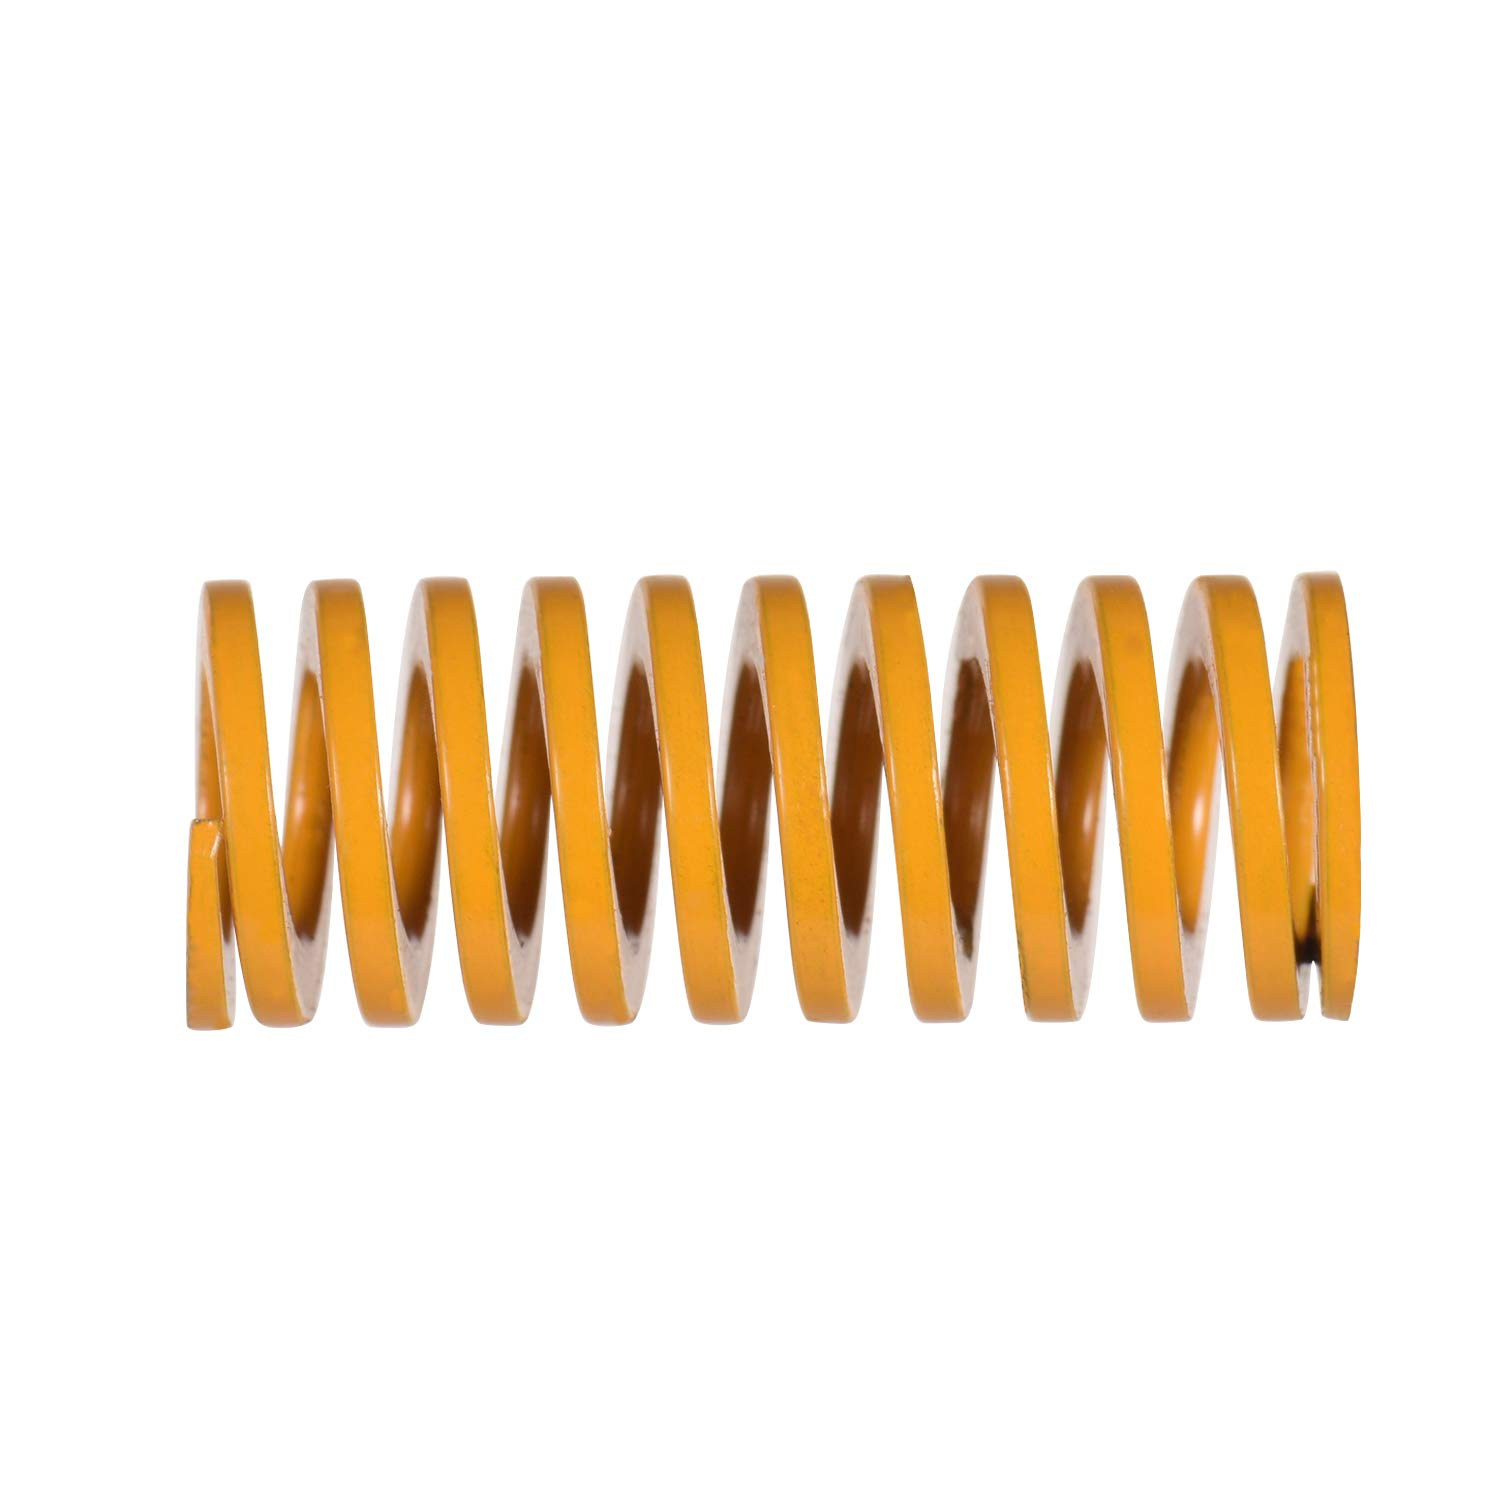 Ajorhkdls Aibecy Yellow Mould Springs Heated Bed Compression Die Spring 10mm OD 20mm Length Compatible with Creality CR-7 CR-8 CR-10 CR-10 S4 CR-10 S5 3D Printer 10pcs